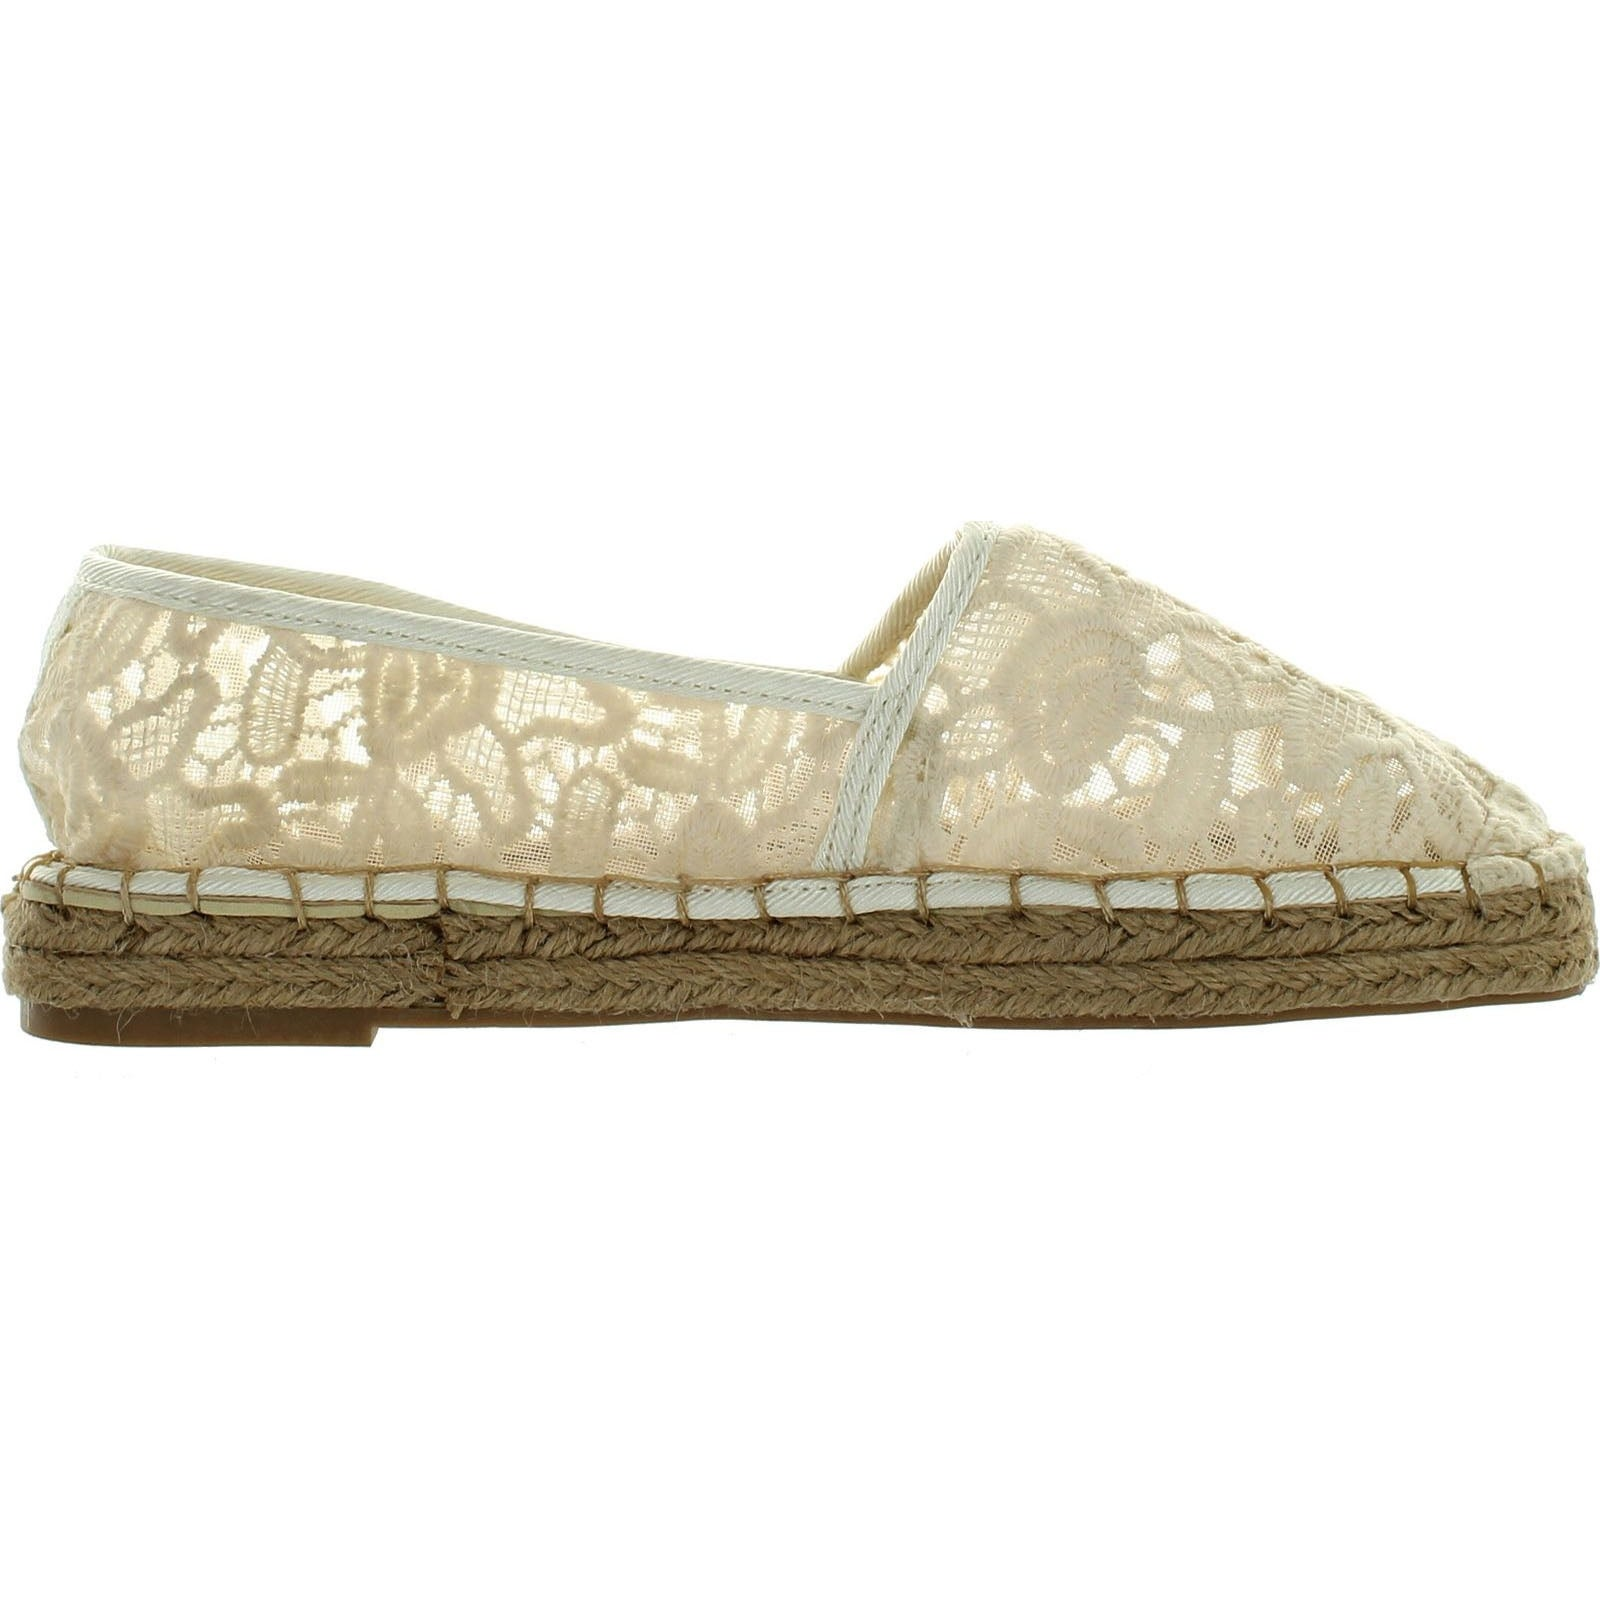 b2a4b1aba Shop Dollhouse Womens Flirt Espadrille Lace Comfortable Fashion Flats Shoes  - beige lace - Free Shipping On Orders Over  45 - Overstock - 14384620